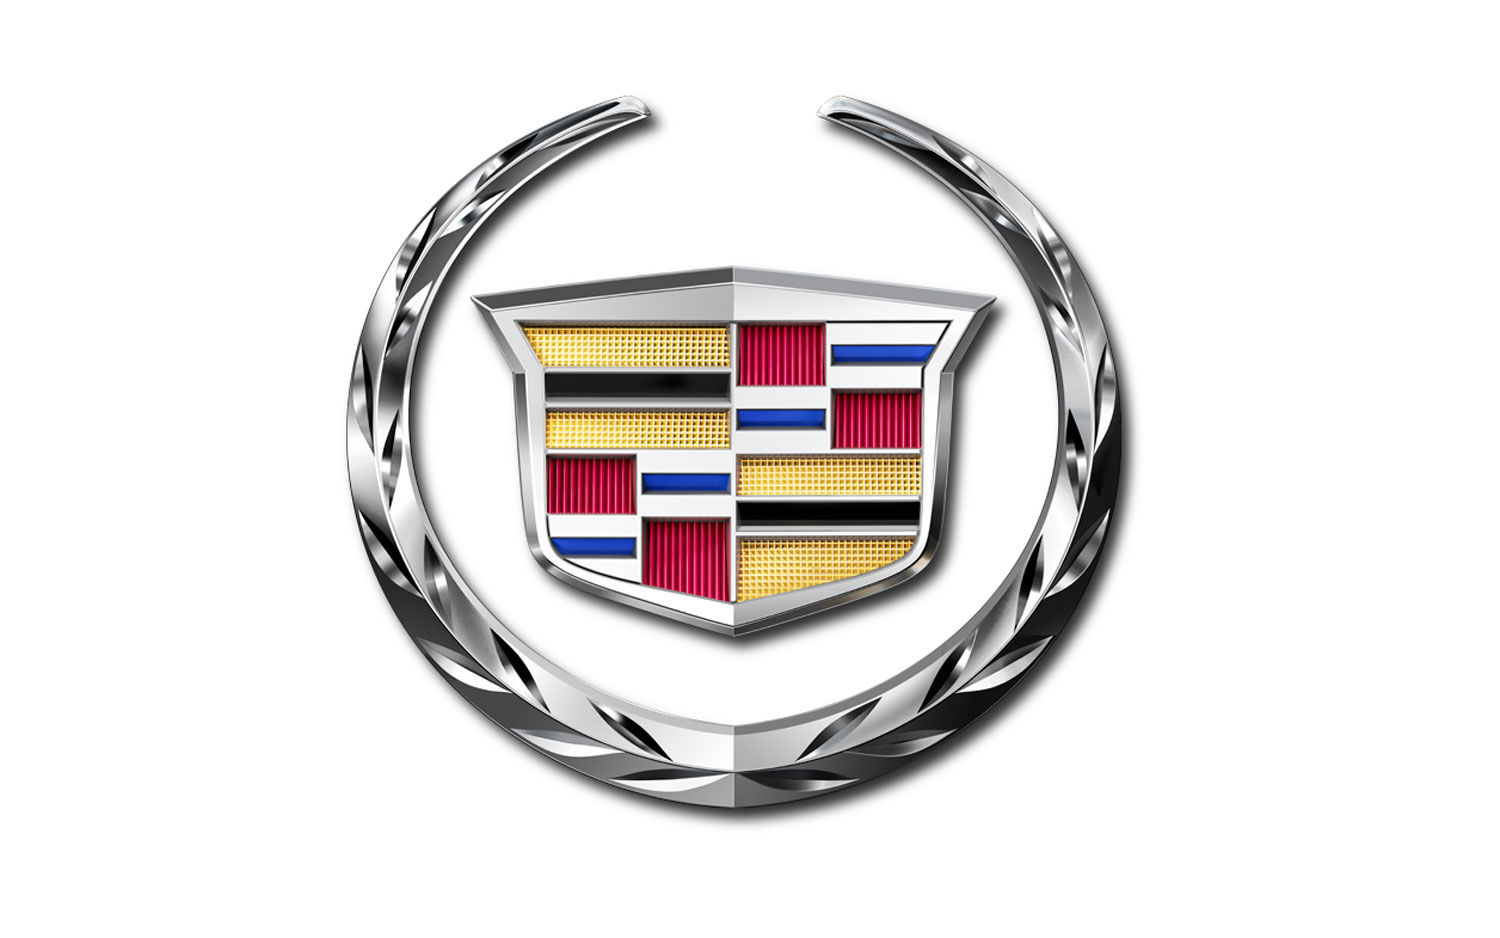 General Motors Logo 20012010 2000x1989 HD png In the mid2005 GM announced that its corporate chrome power emblem Mark of Excellence would begin appearing on